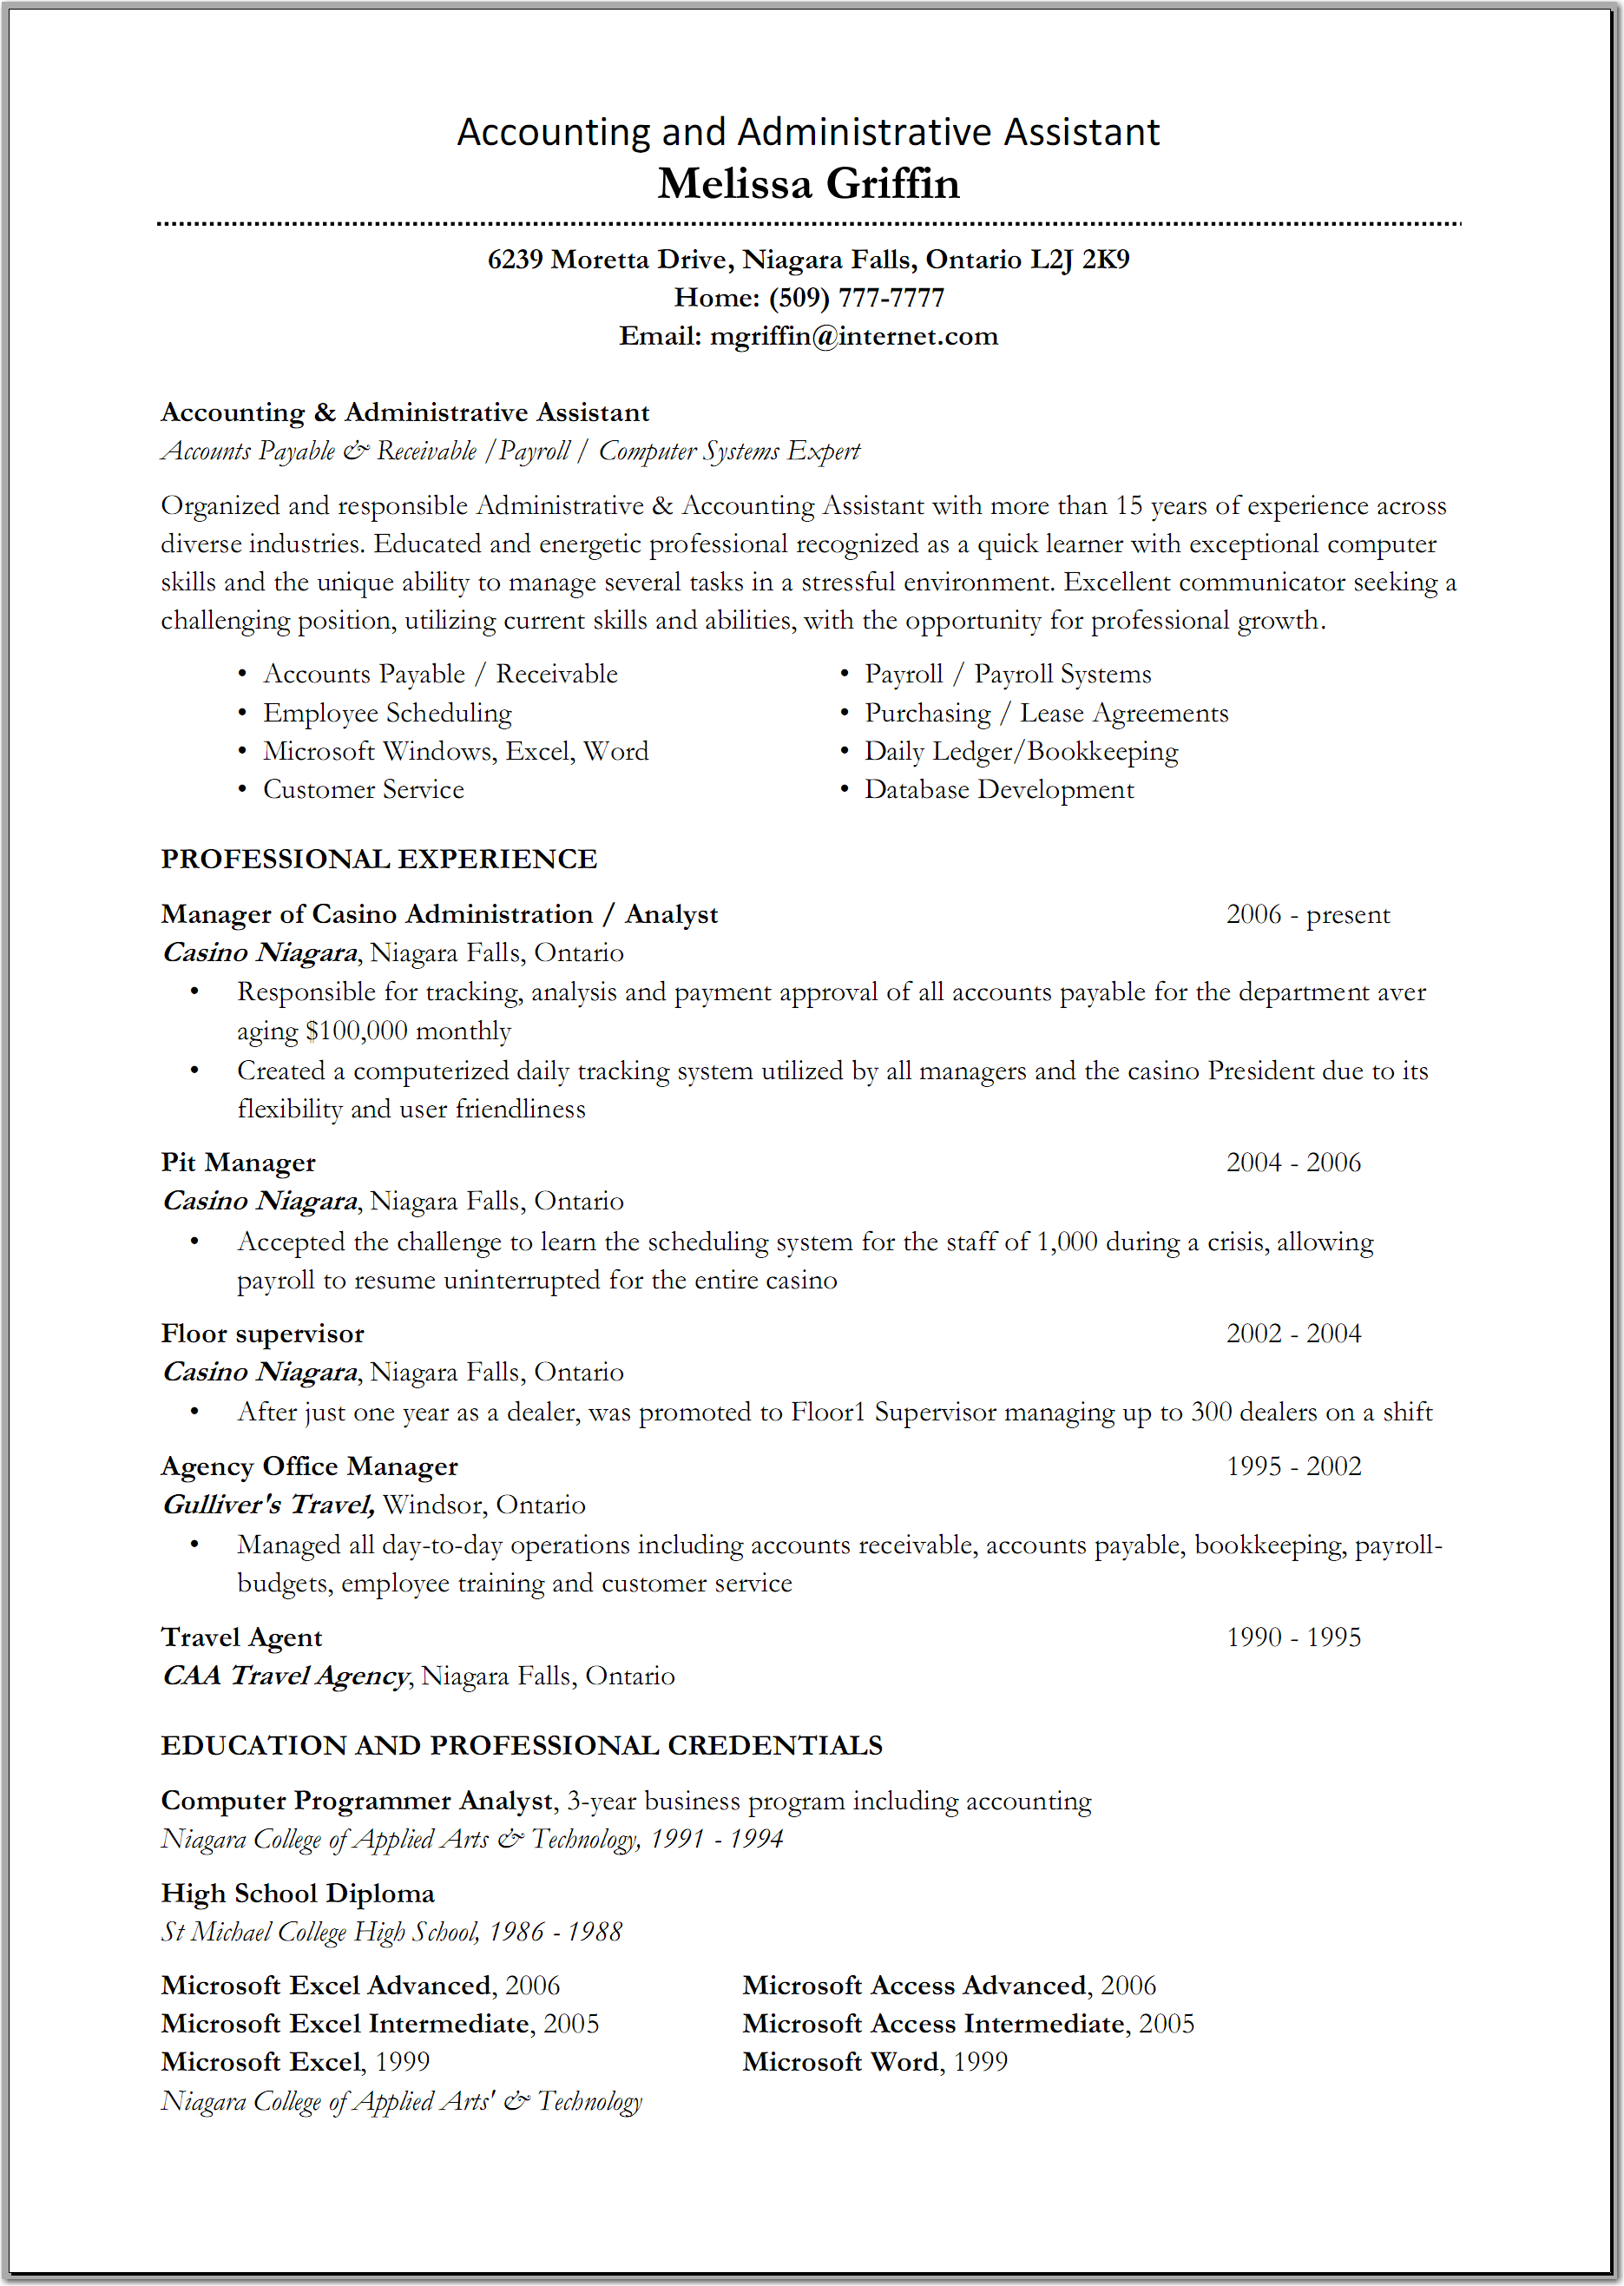 Resume Objective For Administrative Assistant Great Administrative Assistant Resumes  Accounting And